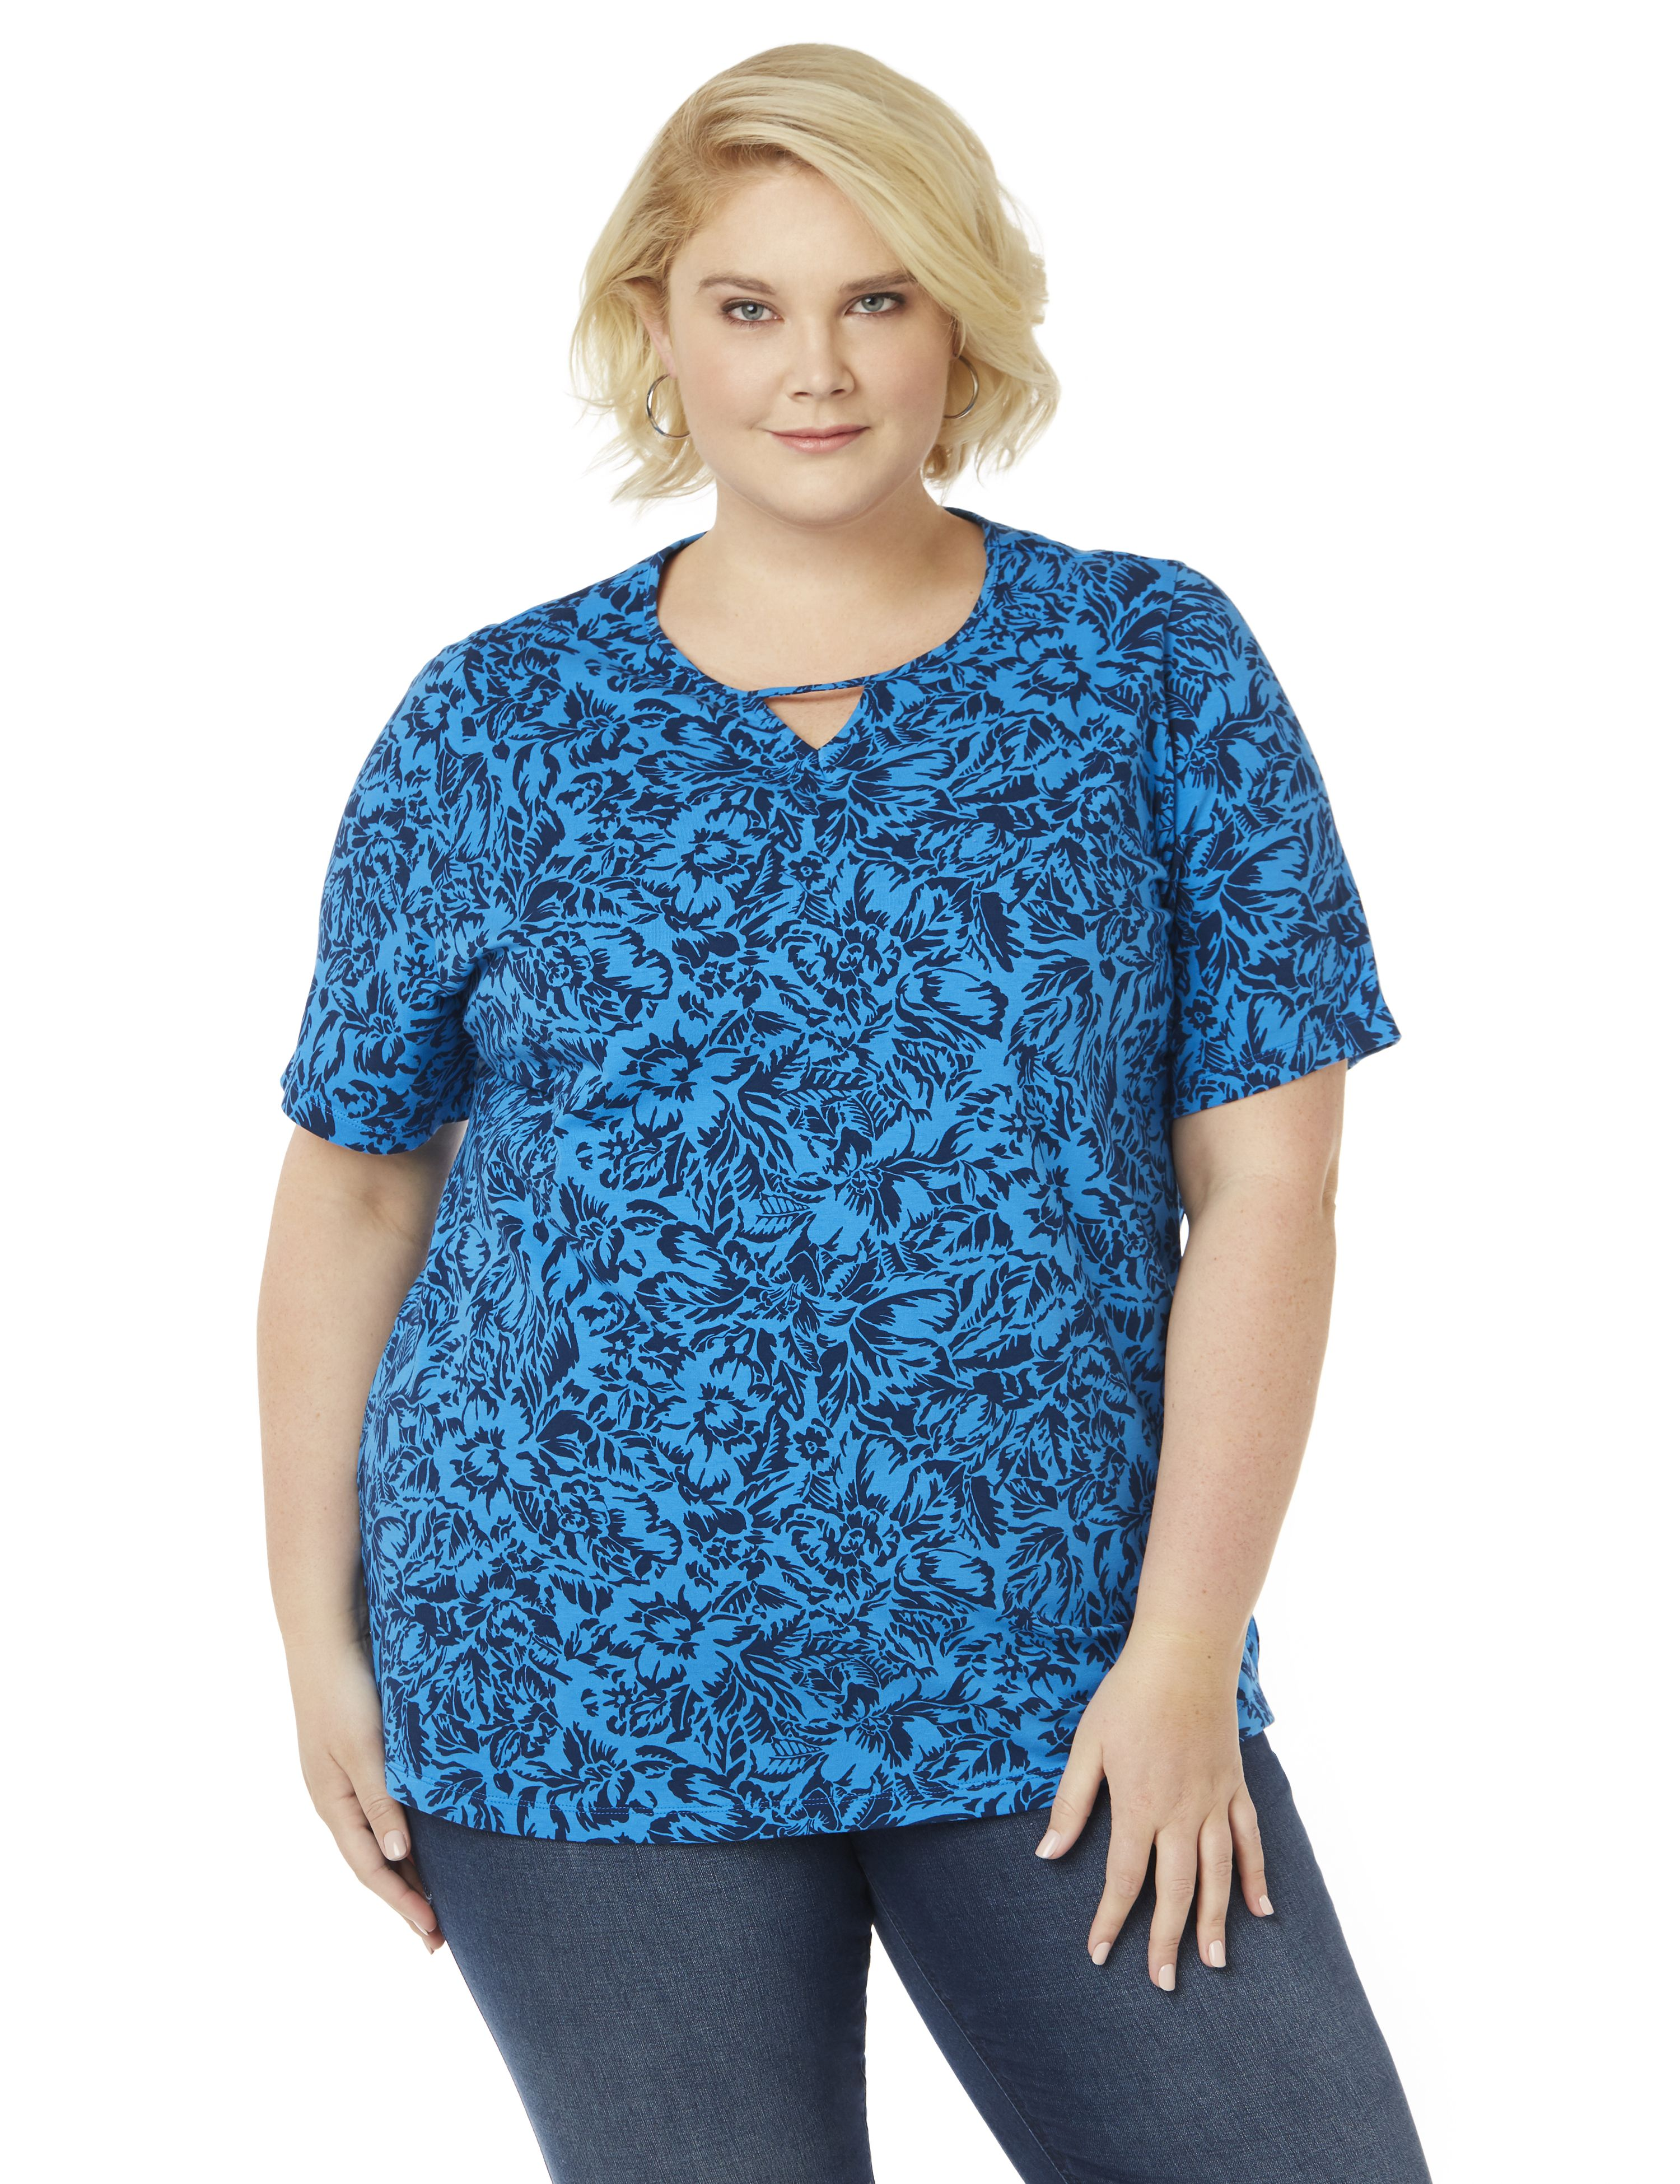 Etched Floral Top 300062266